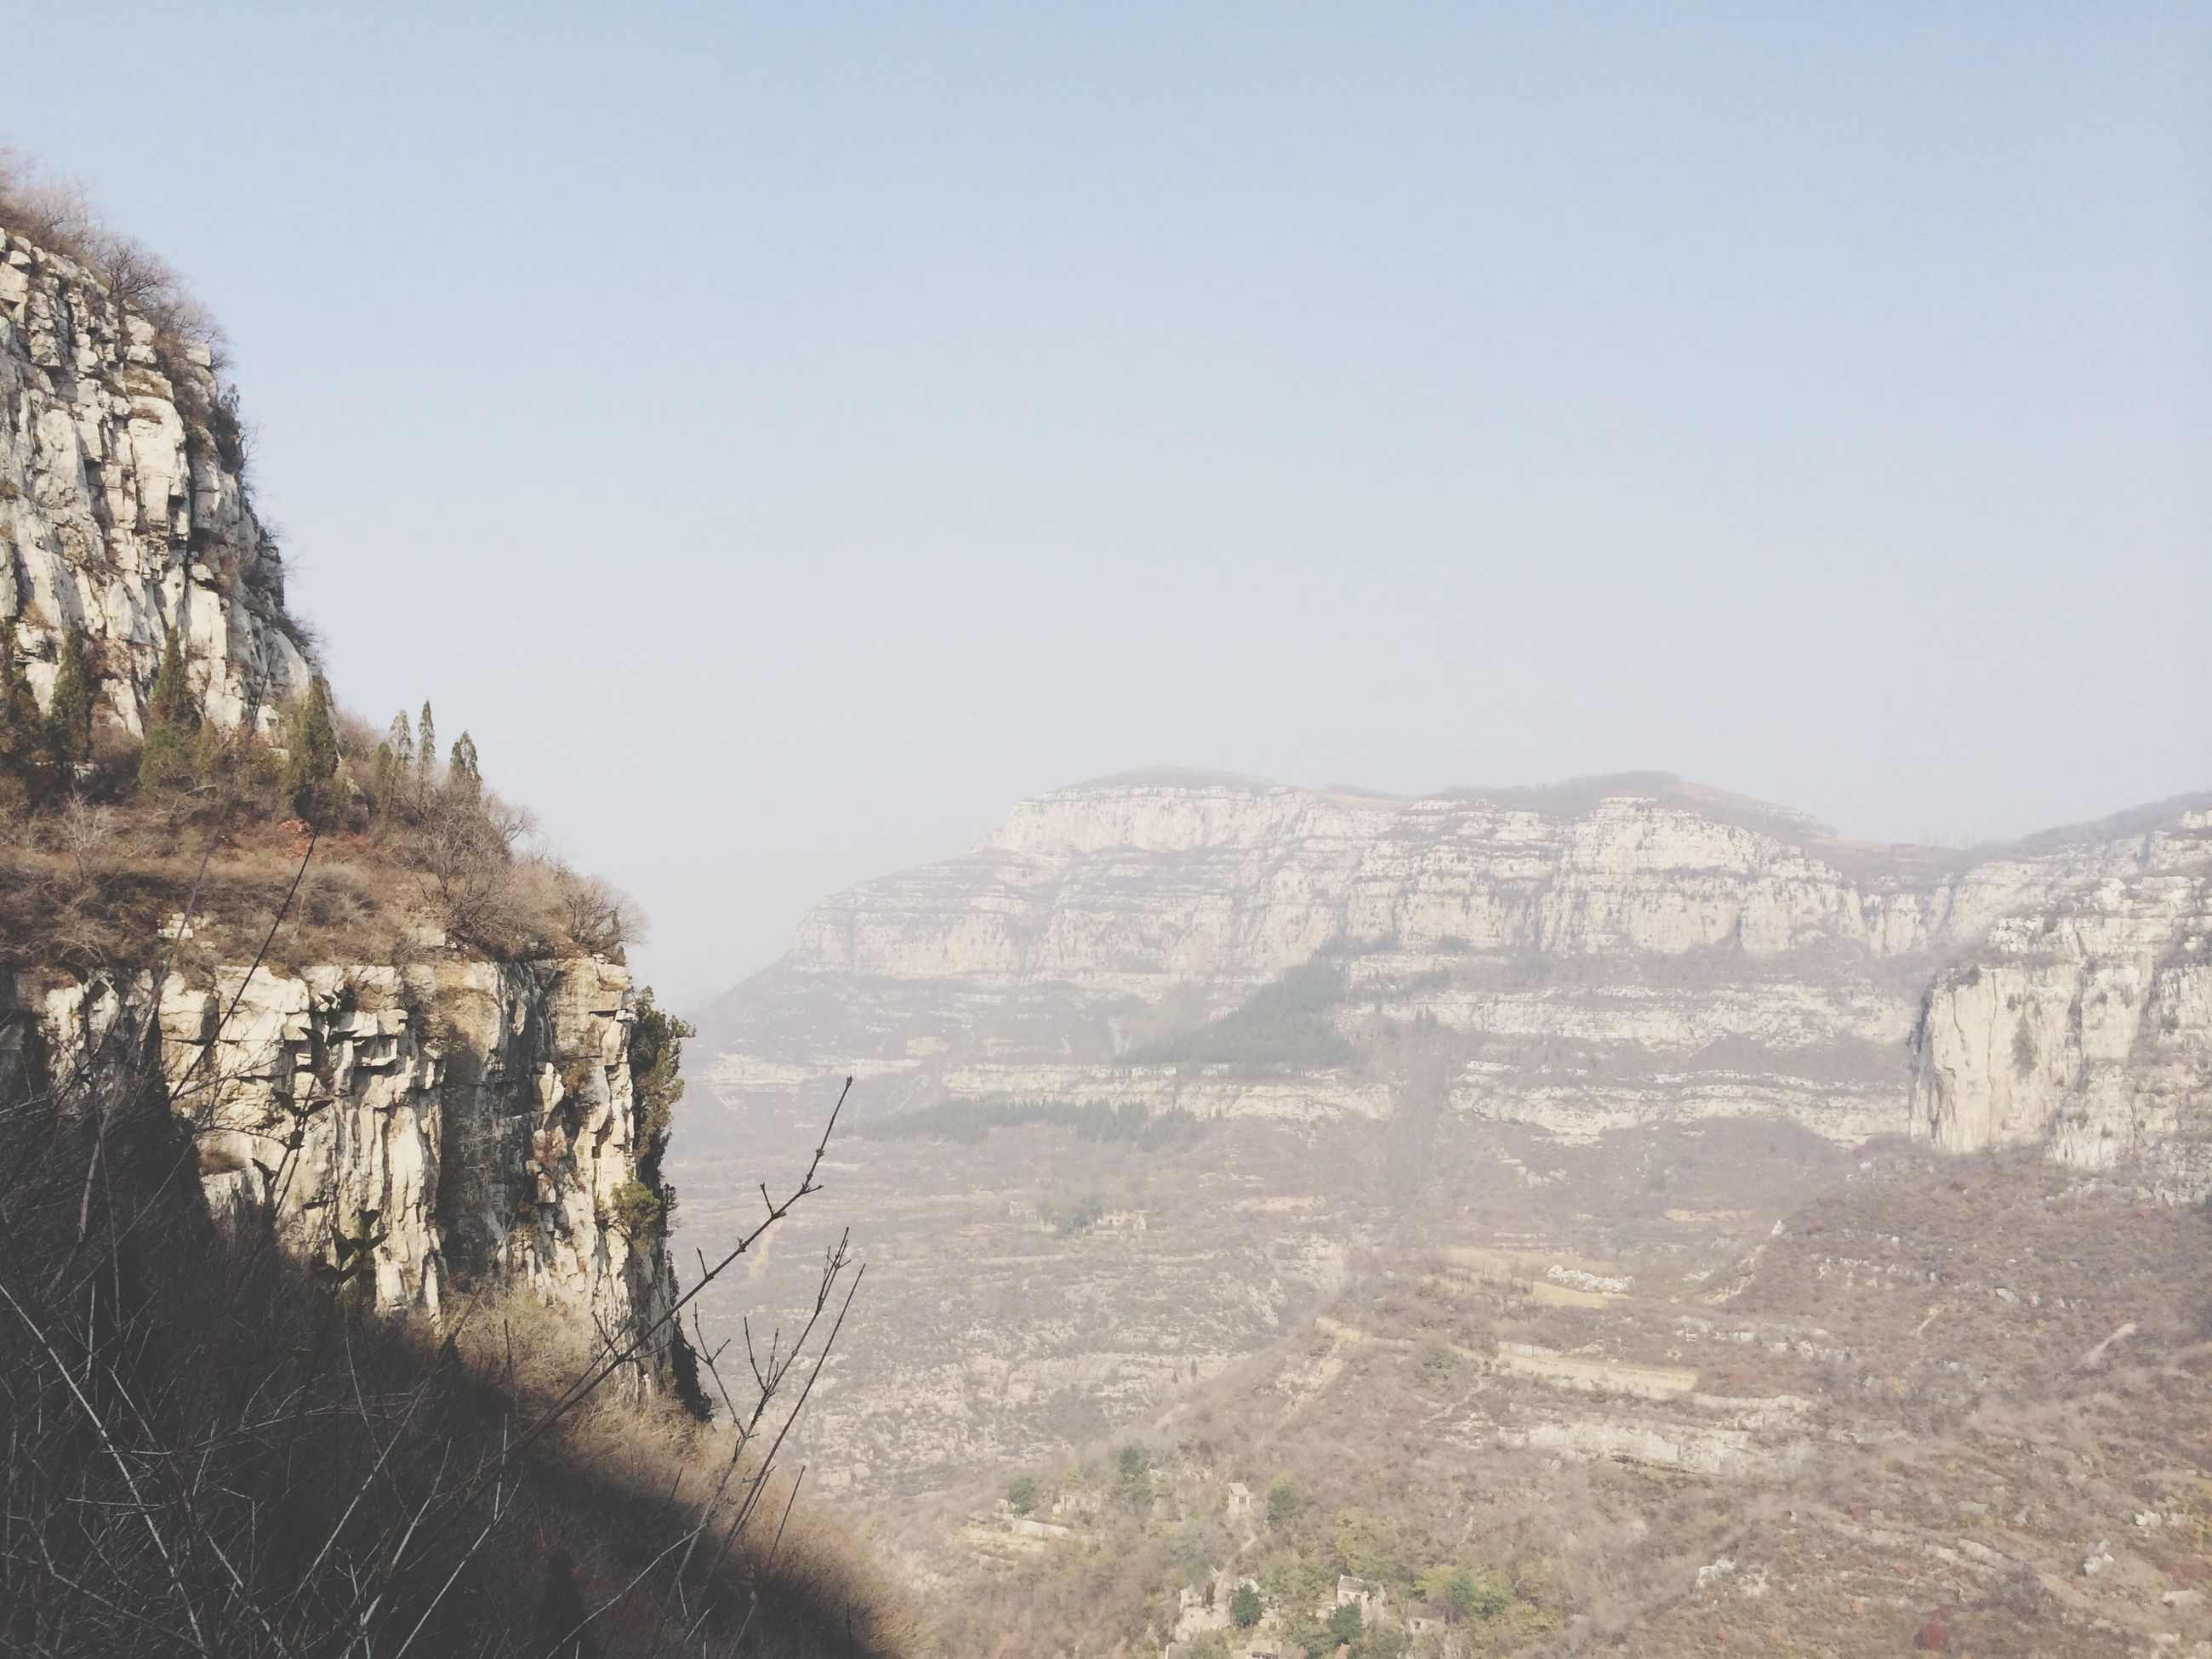 clear sky, tranquility, tranquil scene, scenics, beauty in nature, landscape, copy space, rock formation, mountain, nature, rock - object, non-urban scene, arid climate, geology, physical geography, remote, idyllic, cliff, tourism, day